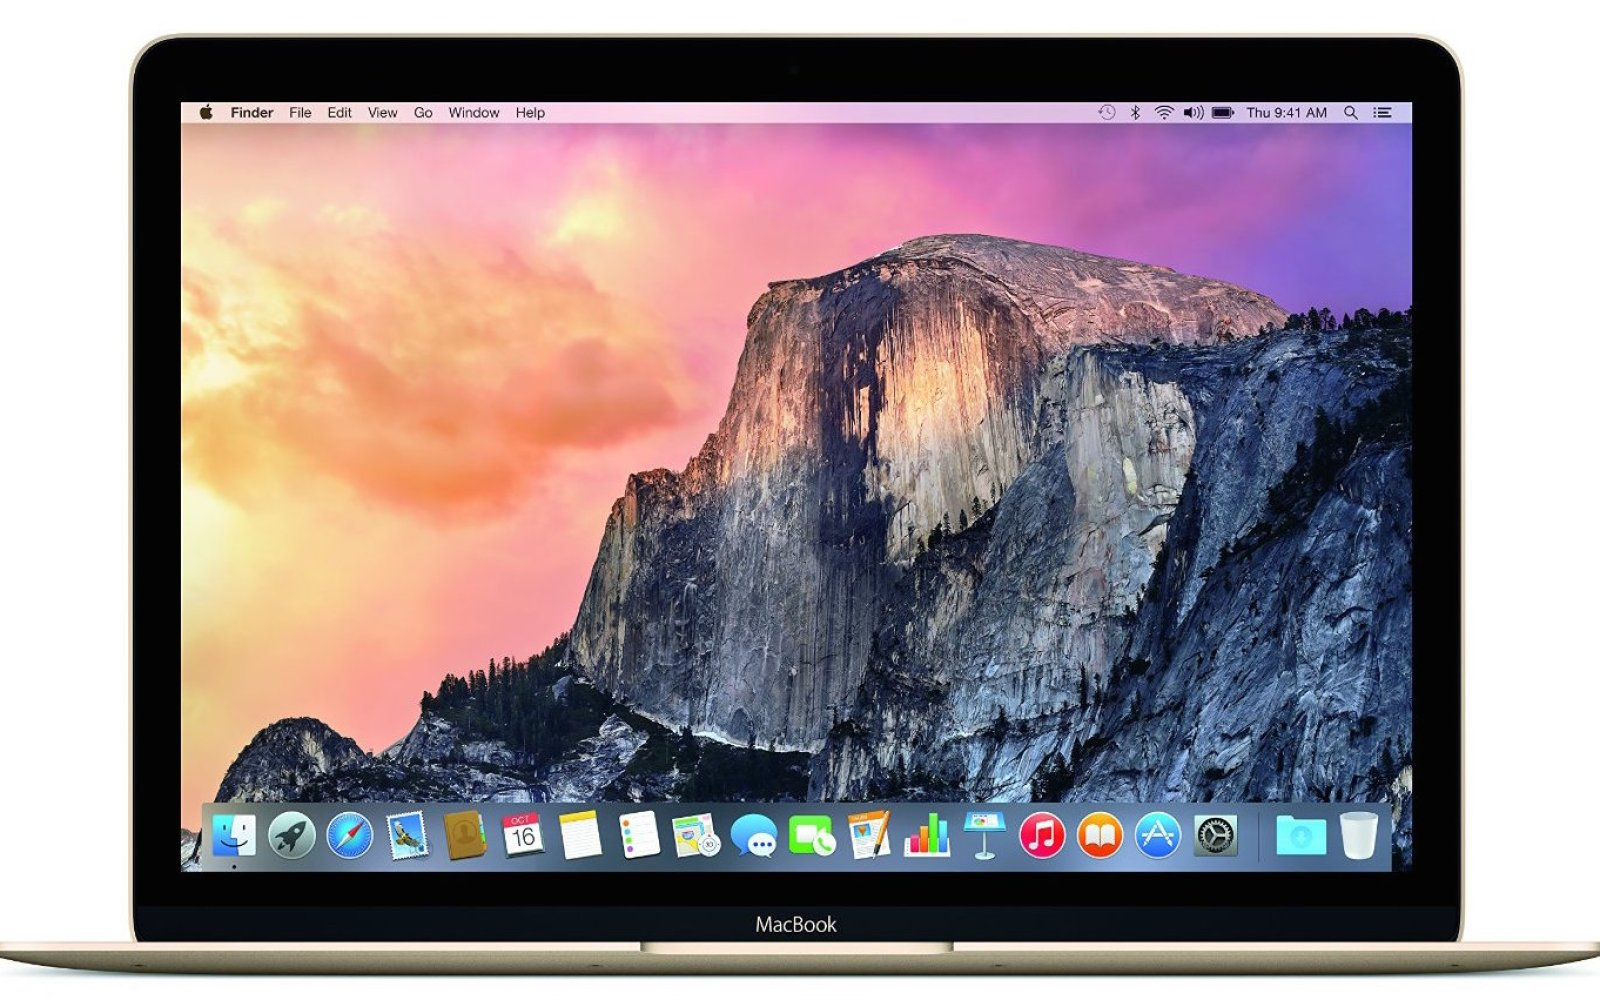 $100 off Apple's new Macbooks (+Airs/Pros and iMacs) w/.edu email address at Best Buy